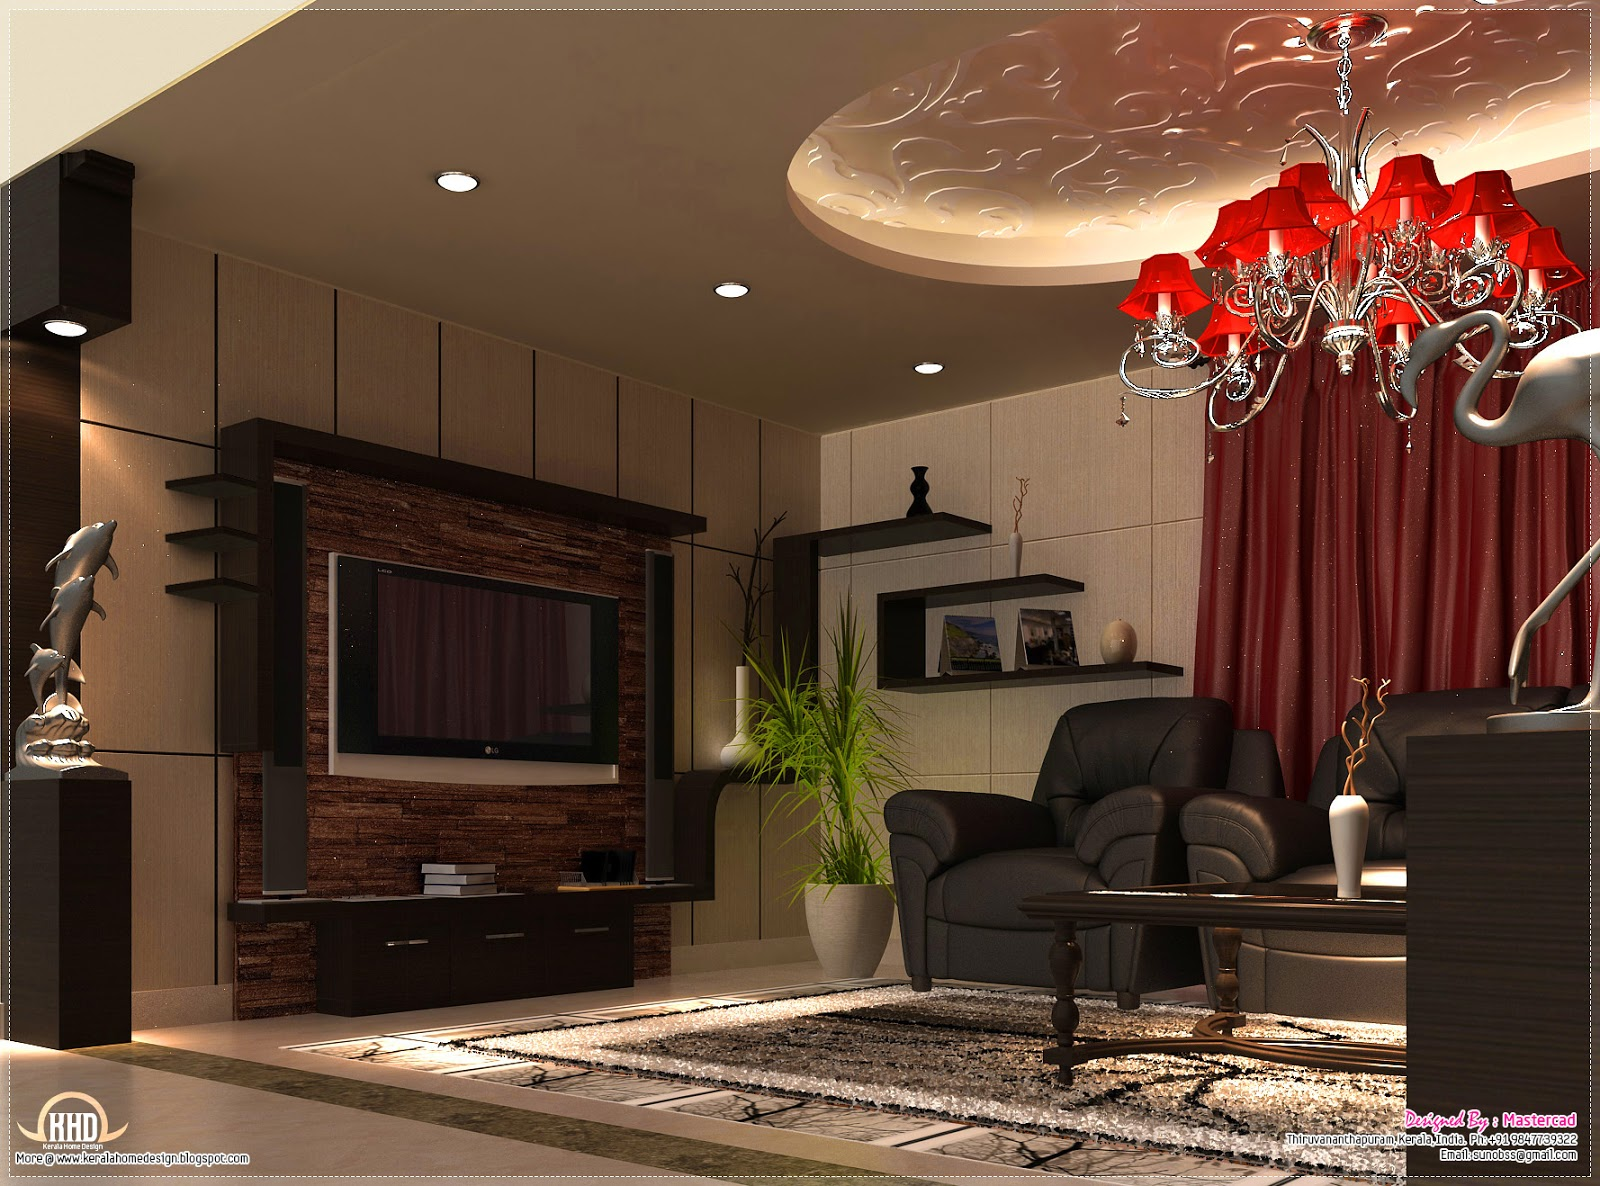 Interior design ideas home kerala plans - Home interior design indian style ...